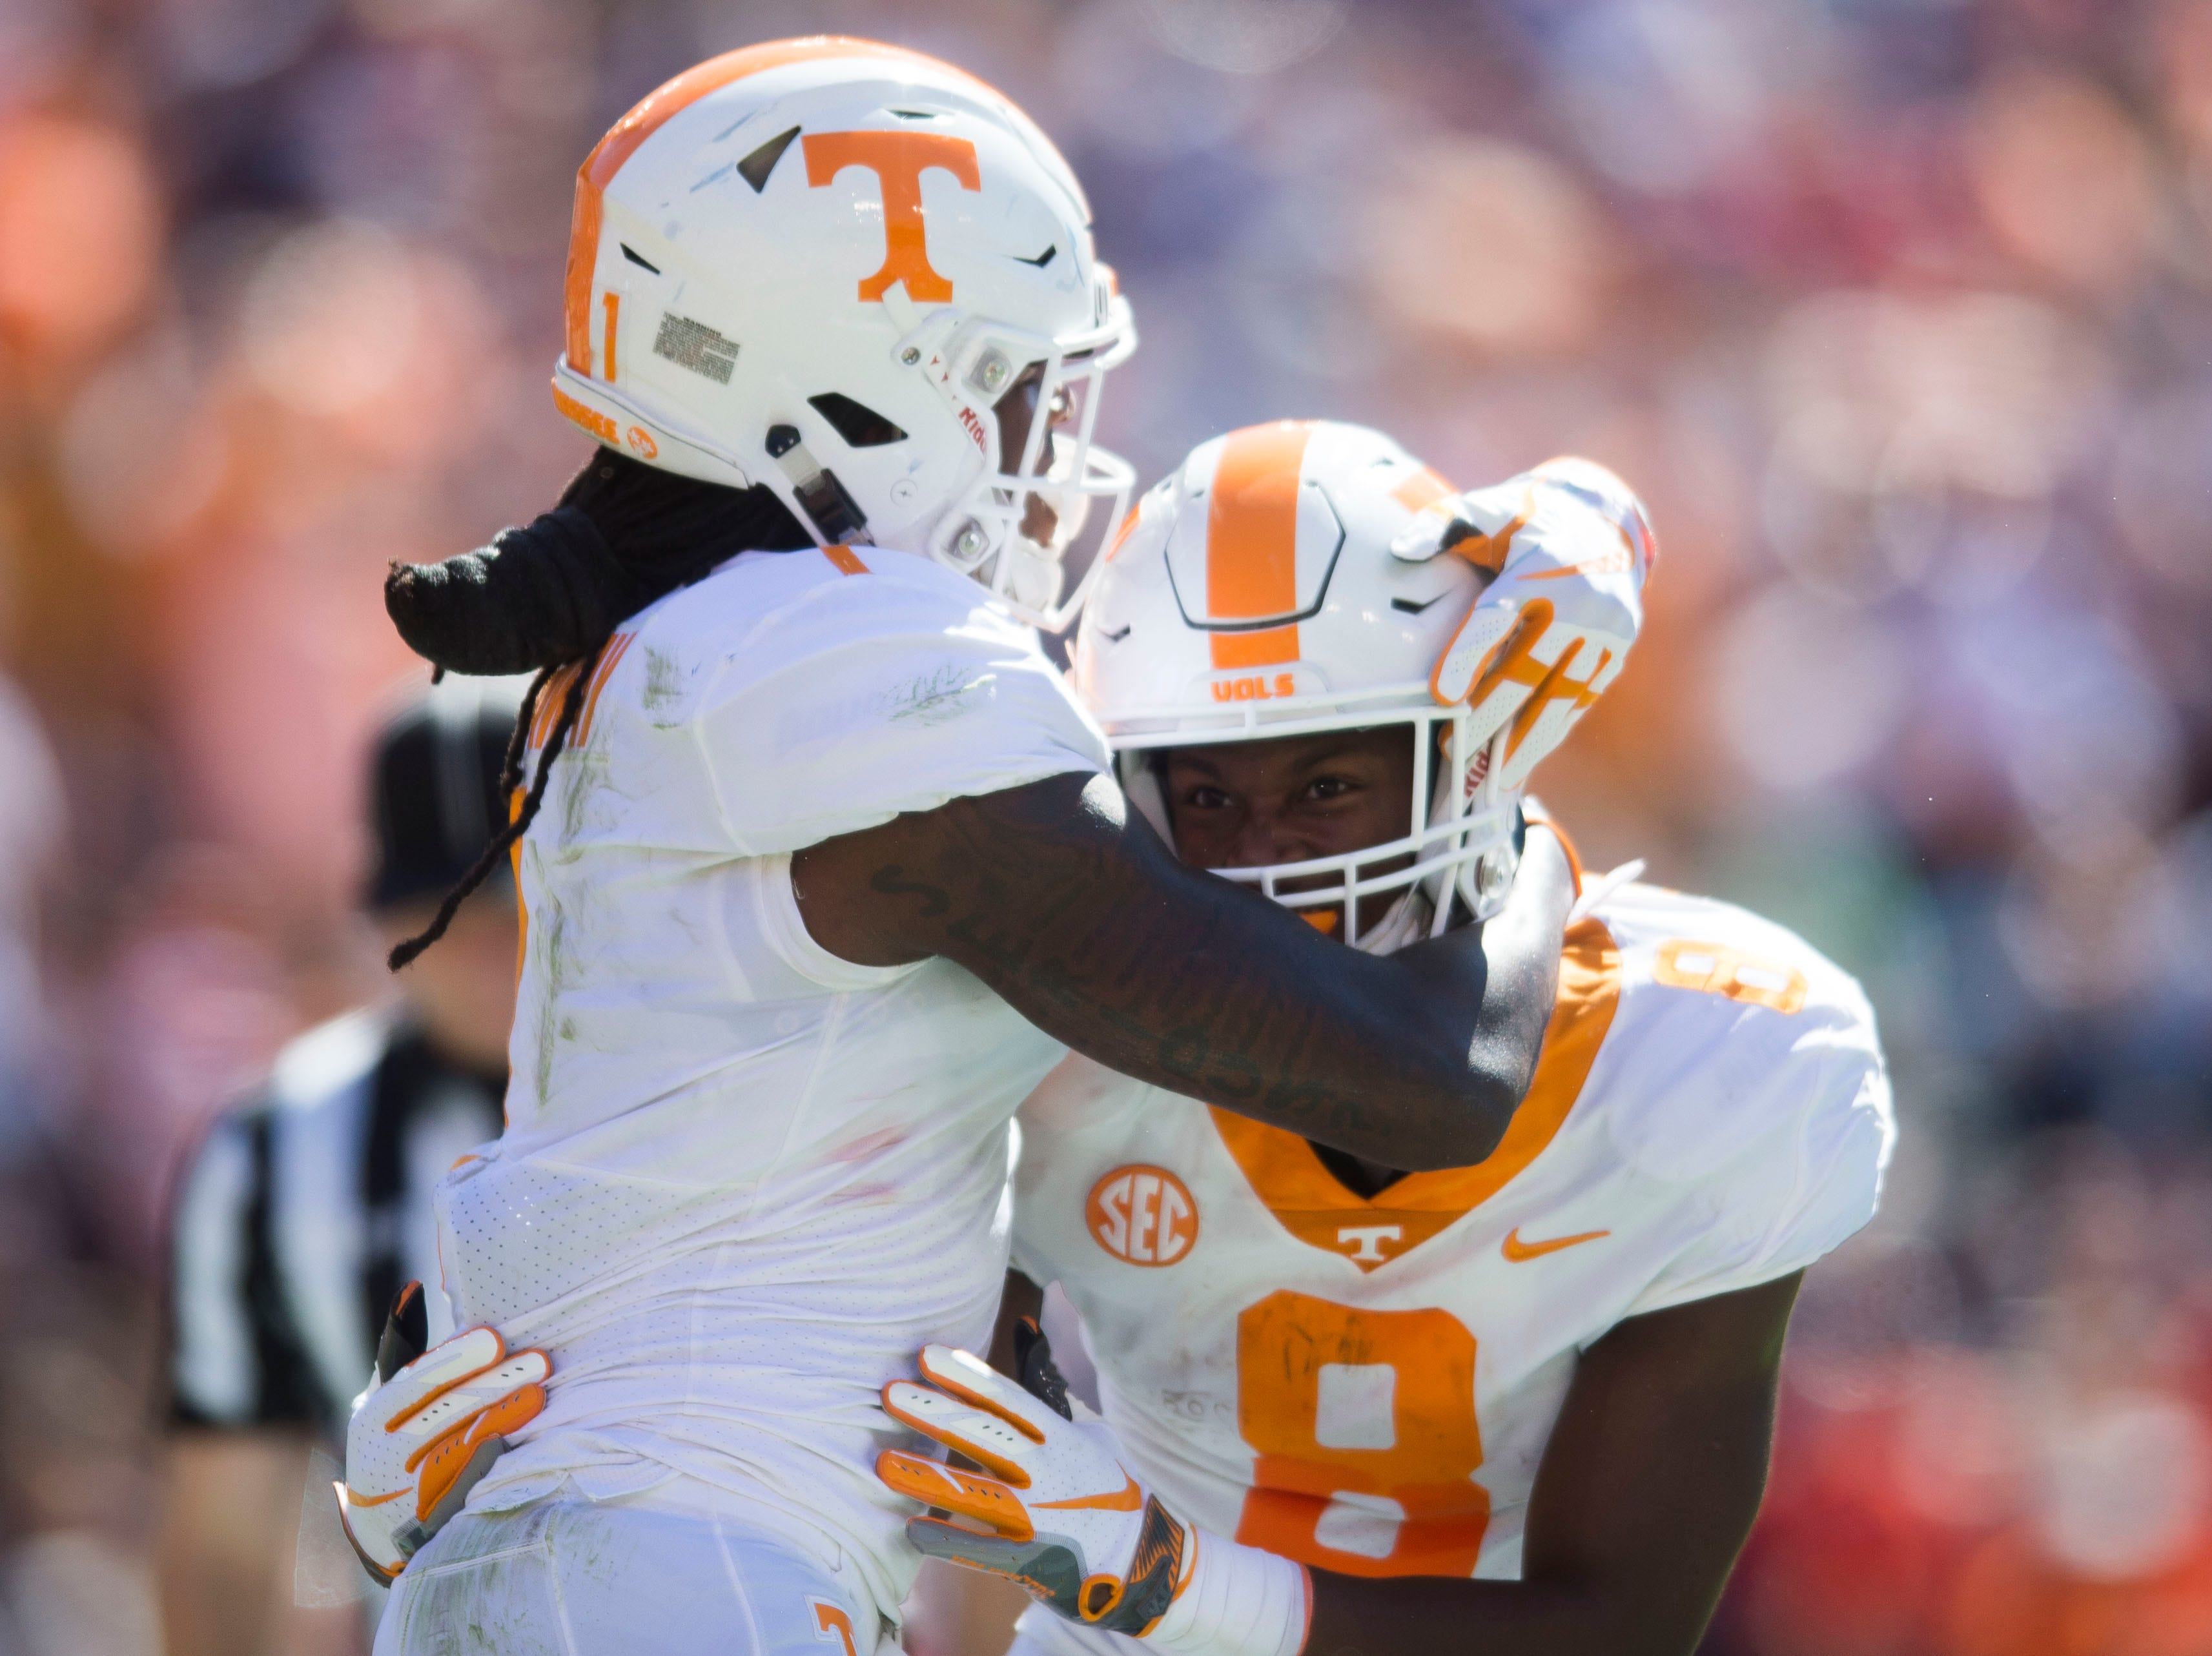 Tennessee wide receiver Marquez Callaway (1)  celebrates Tennessee running back Ty Chandler's touchdown during a game between Tennessee and Auburn at Jordan-Hare Stadium in Auburn, Ala. Saturday, Oct. 13, 2018.